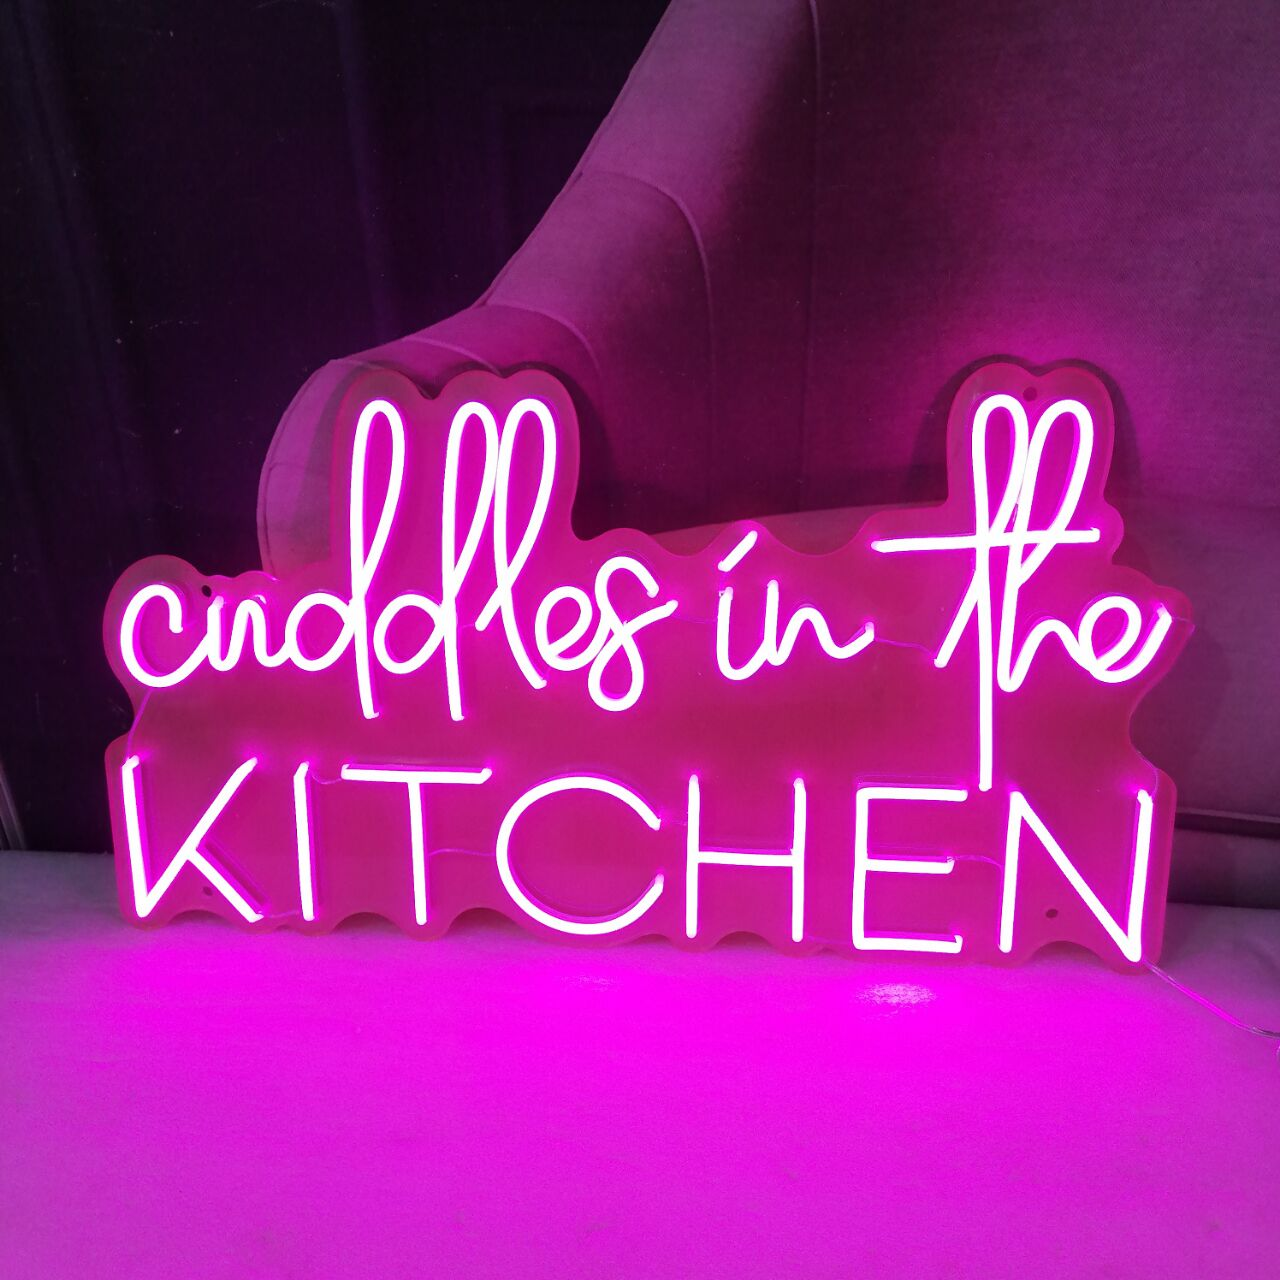 Personalized Neon Signs Wall Hanging Decor for Business Logo Slogan Wedding Handmade with Neon Flex Custom Neon Signs Acrylic